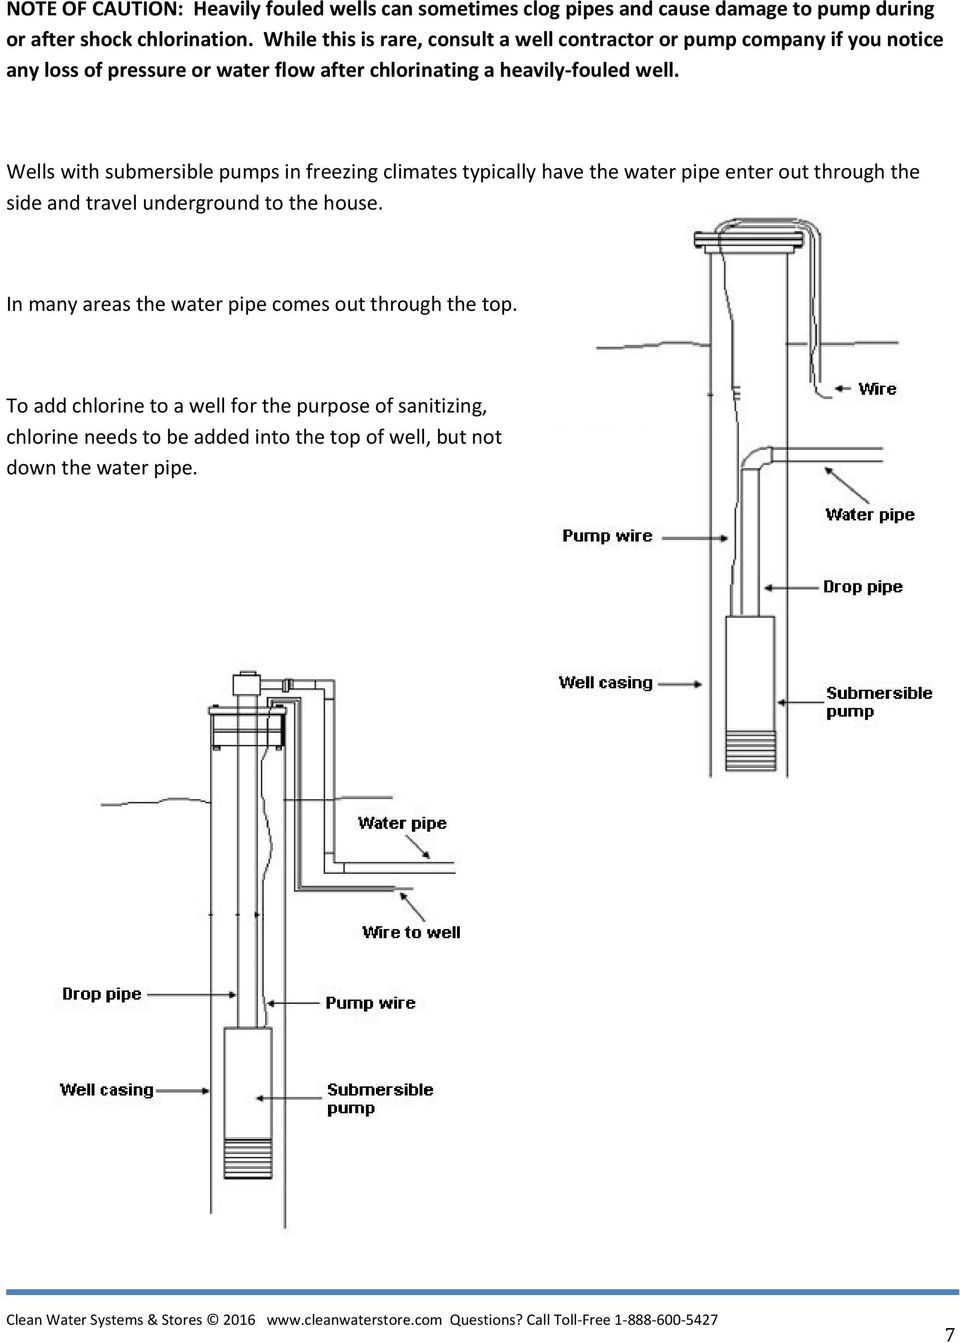 Wells with submersible pumps in freezing climates typically have the water pipe enter out through the side and travel underground to the house.